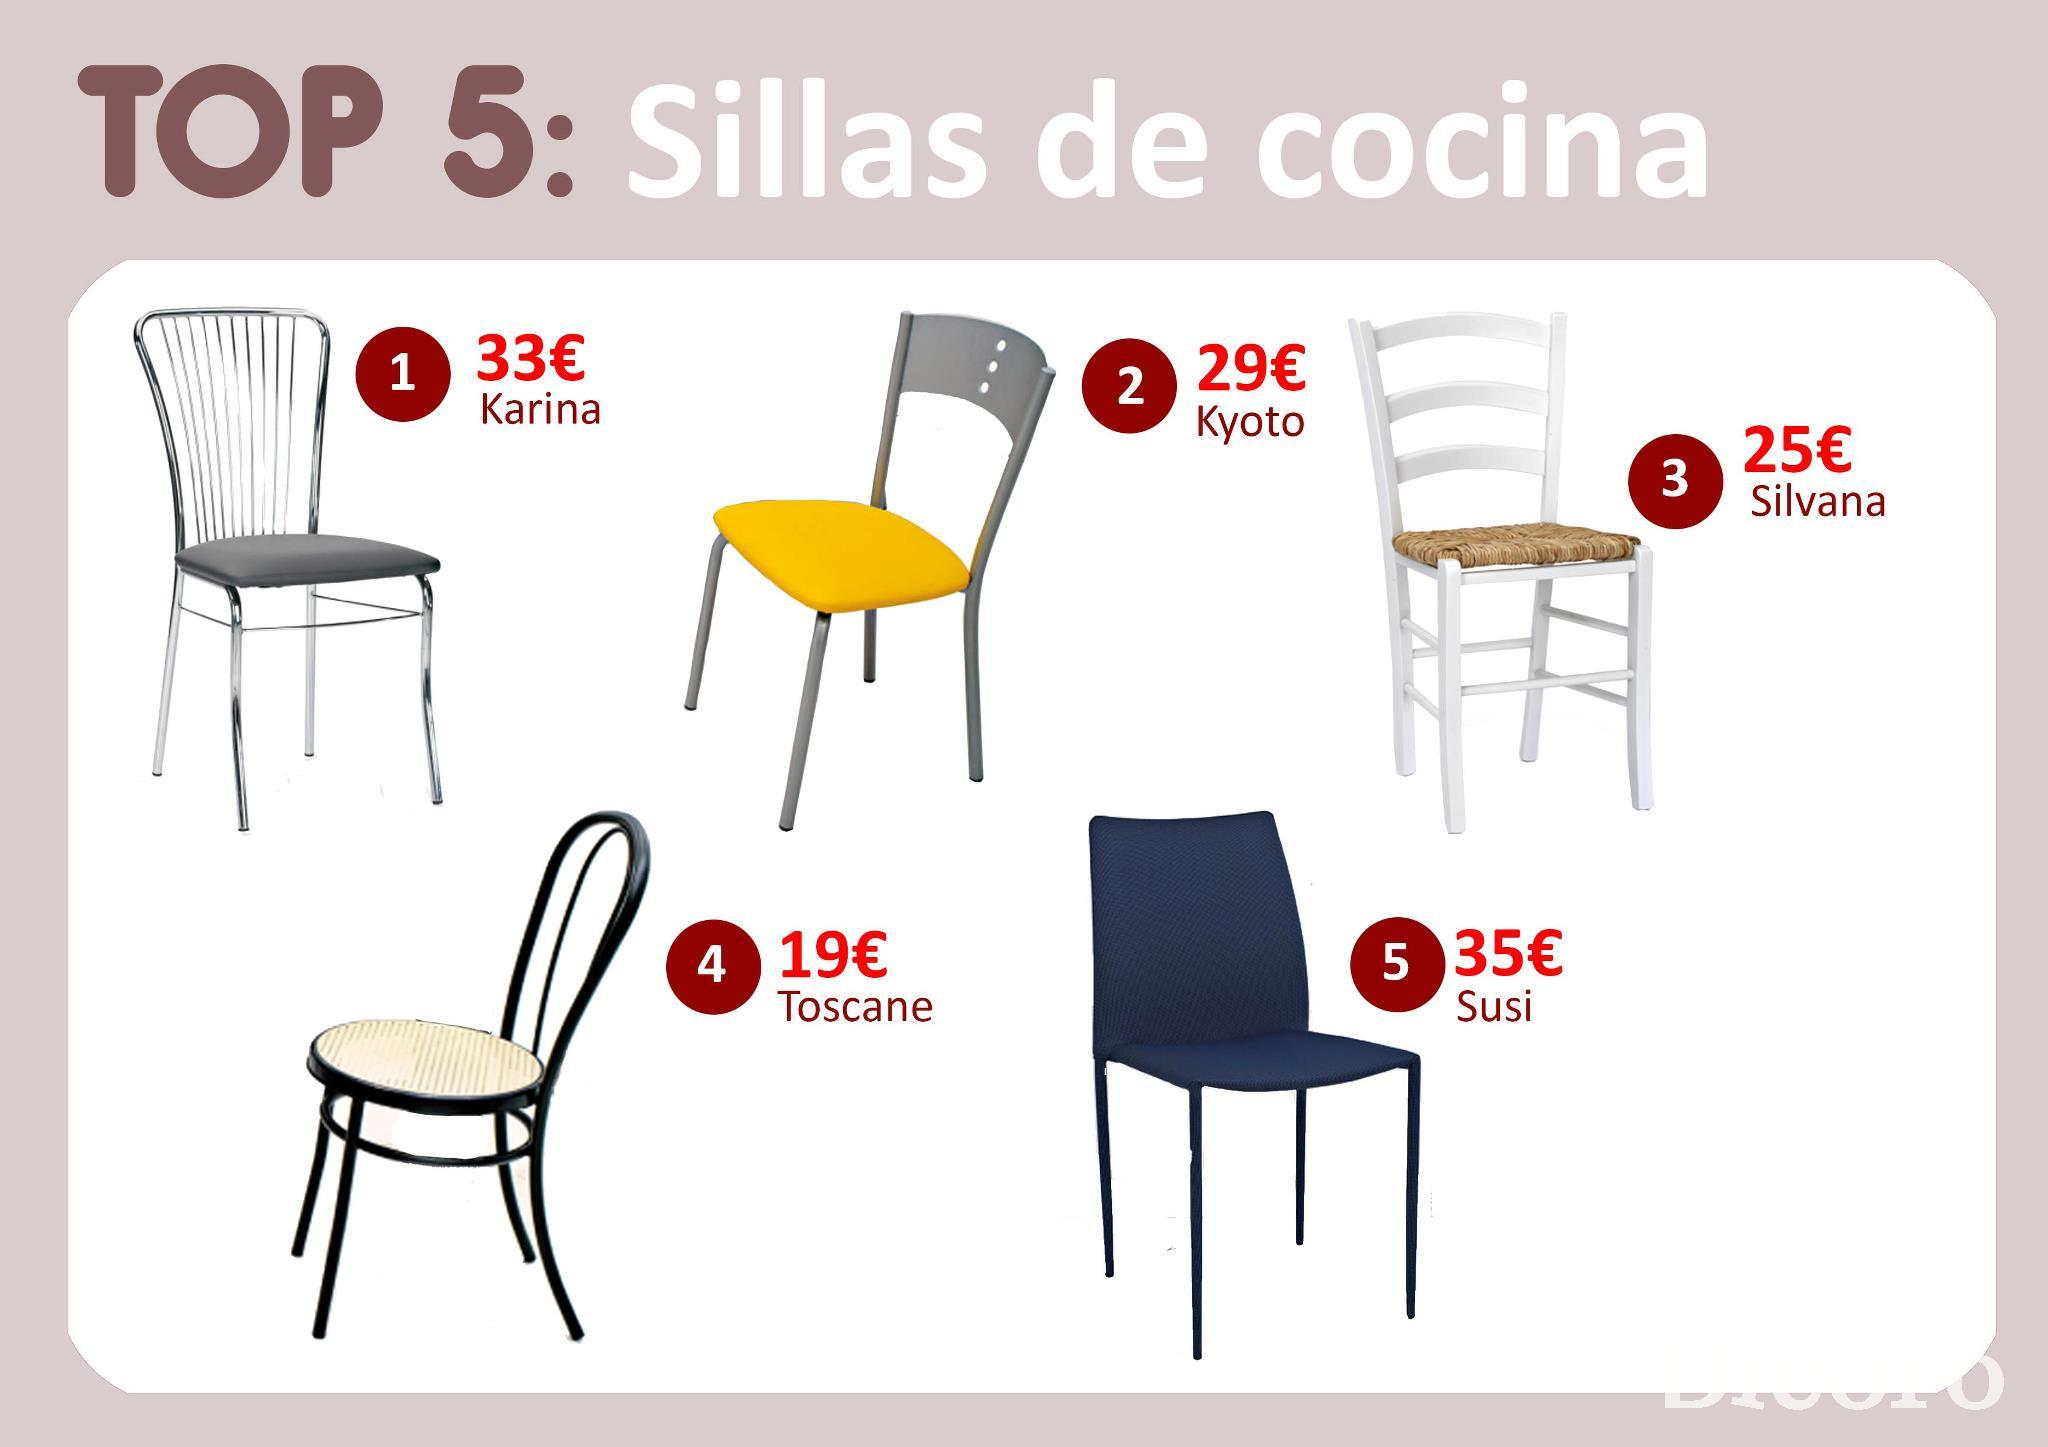 Top 5 sillas blog con ideas de decoracion ideas para for Sillas para cocina precios